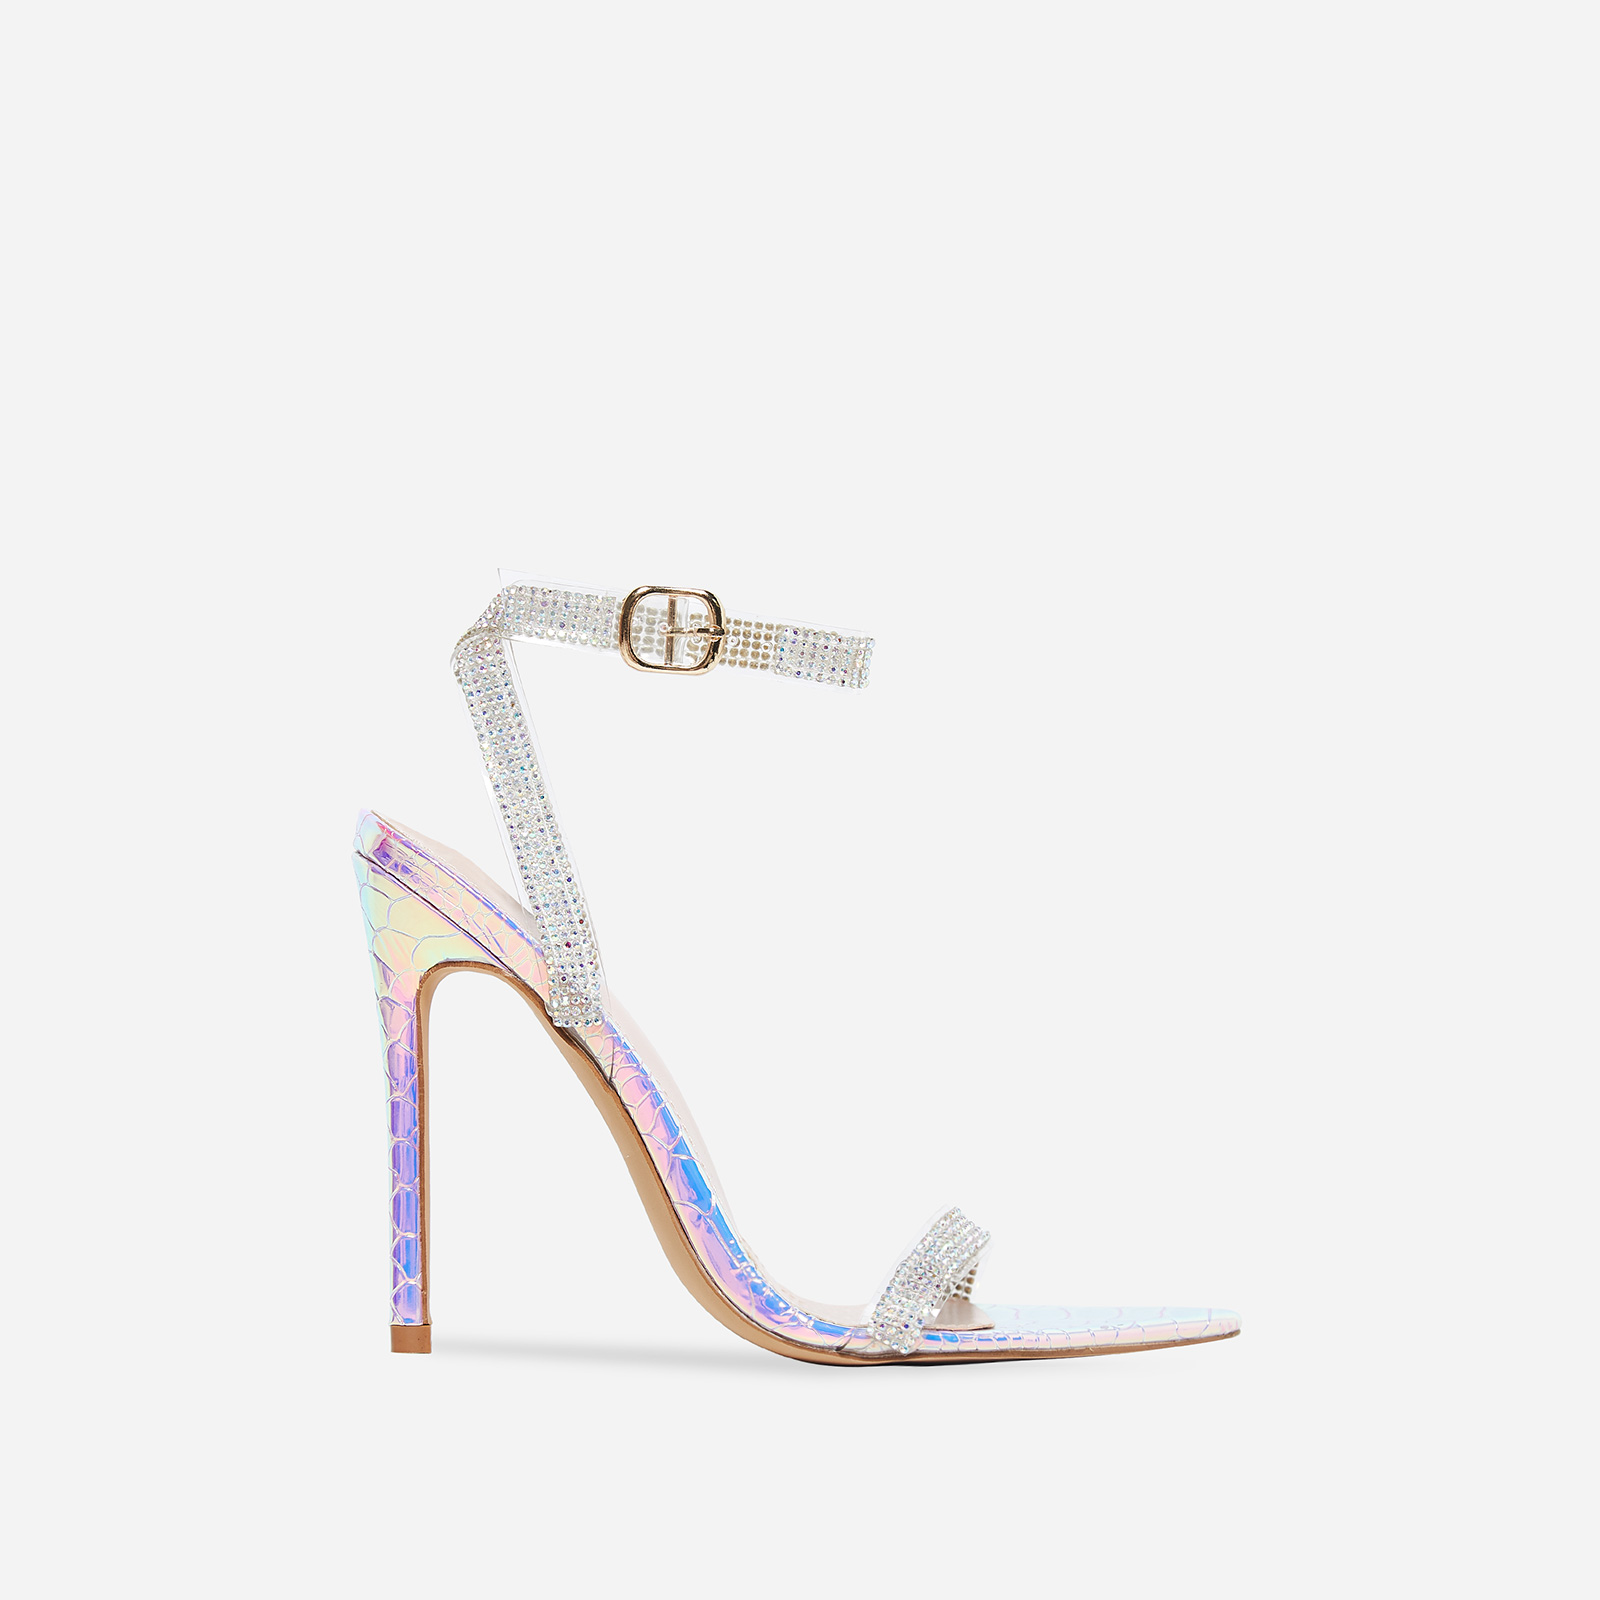 String Diamante Pointed Toe Heel In Silver Snake Print Faux Leather